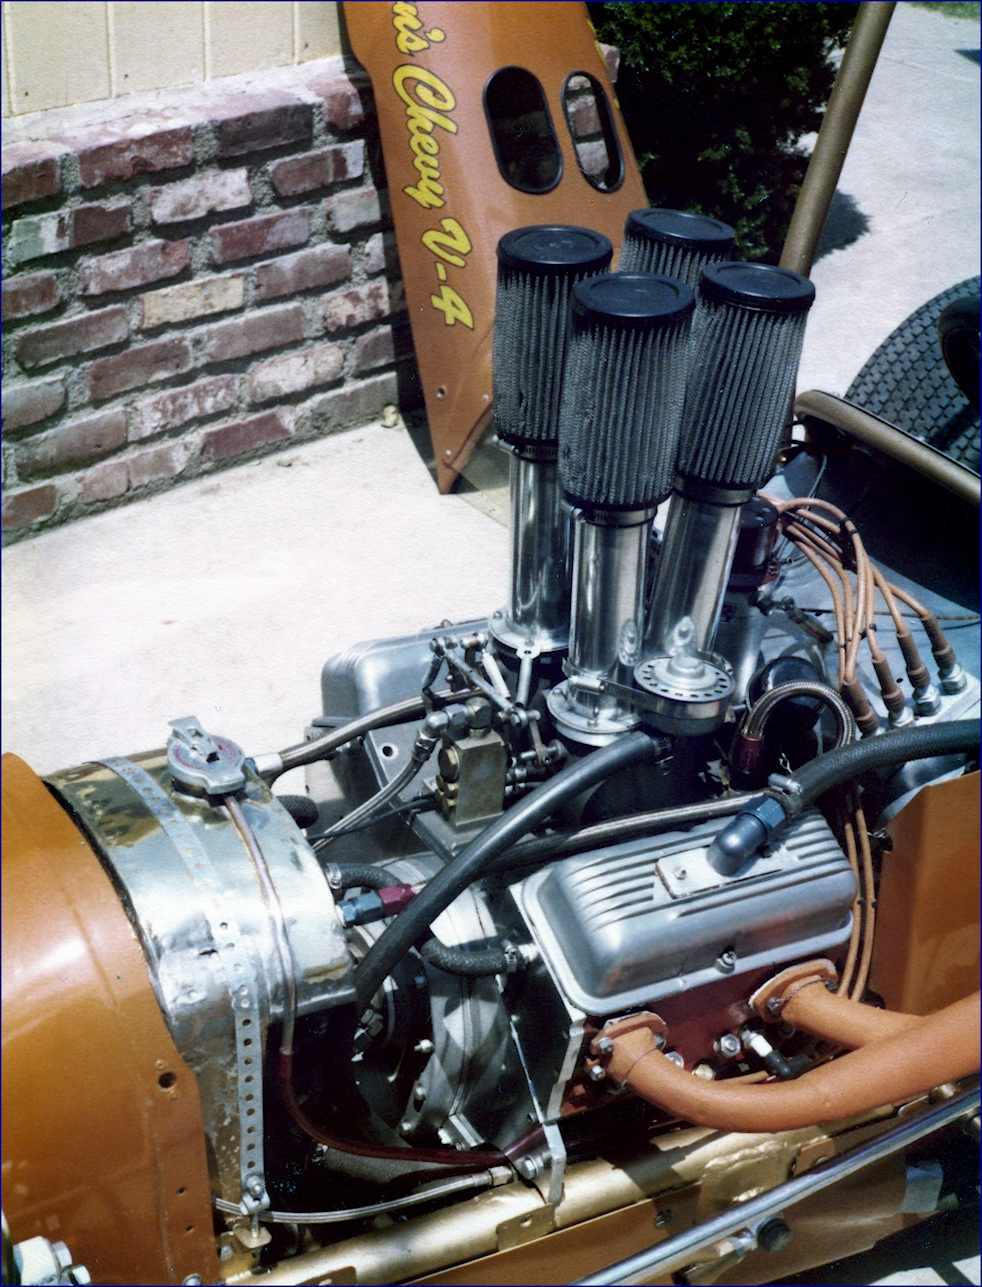 Jim Watson photo of the front end and engine of his Chevy V-4 Midget Race Car